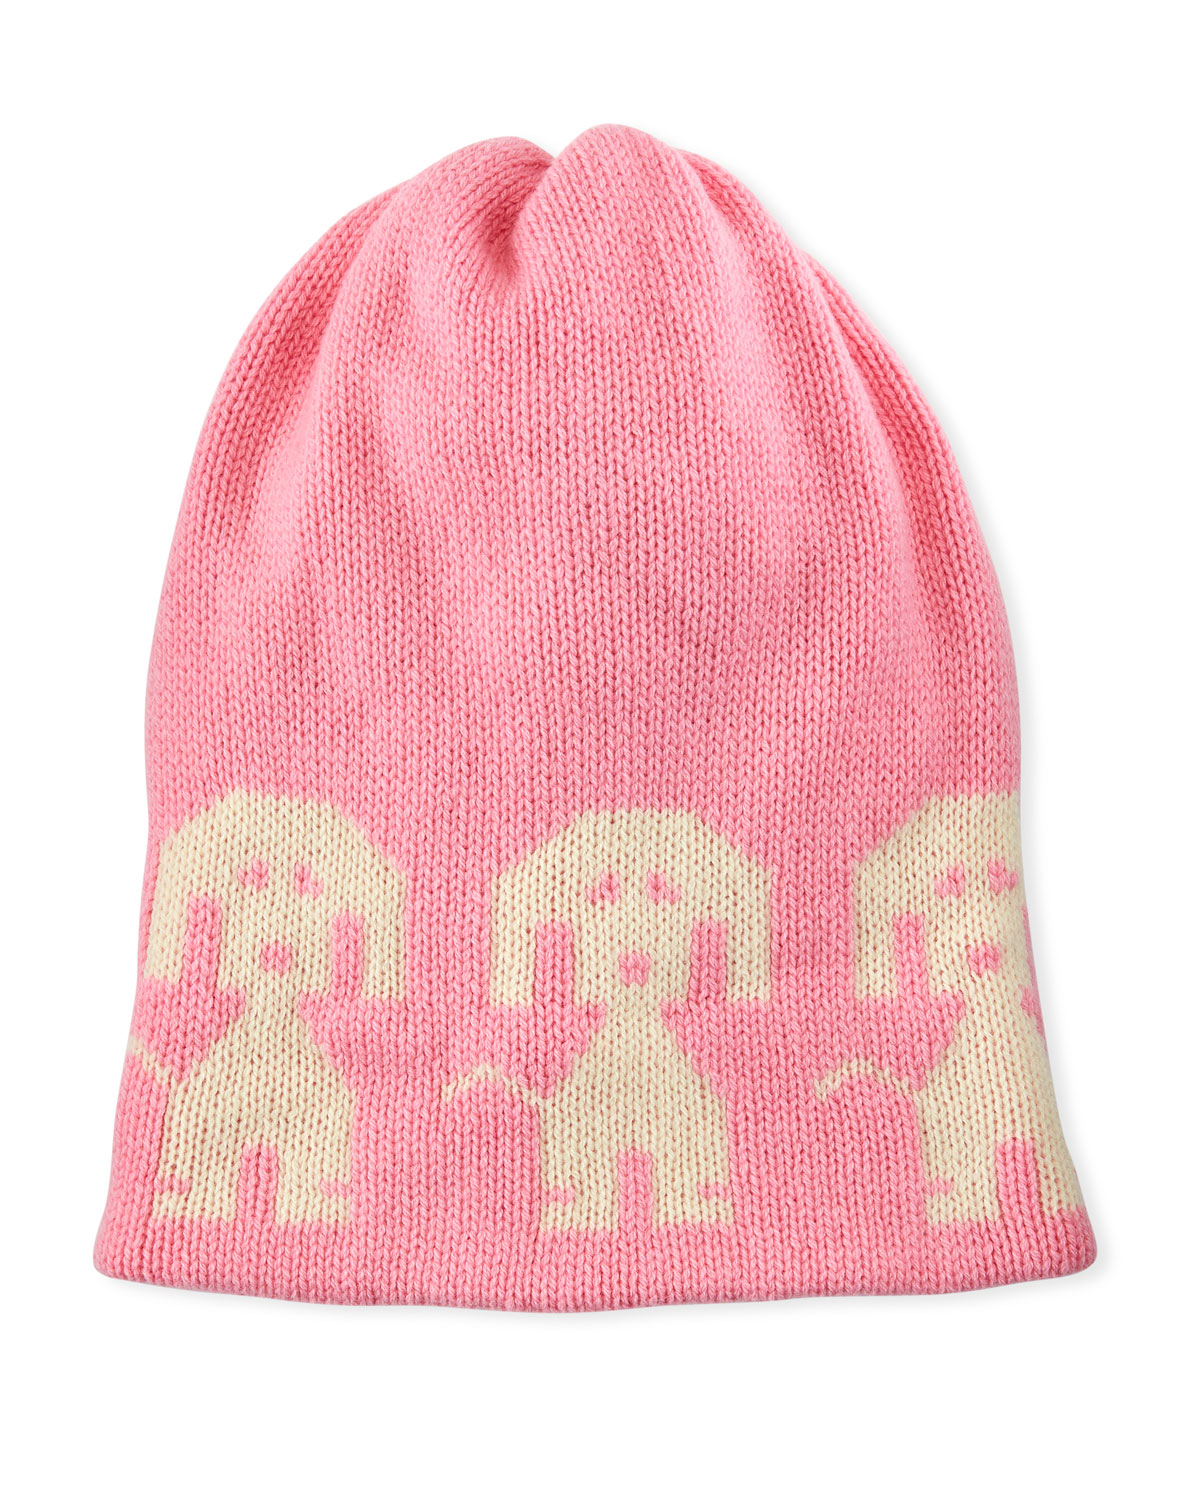 b54766a730c2 Moncler Grenoble Wool-Cashmere Dog-Intarsia Beanie Hat